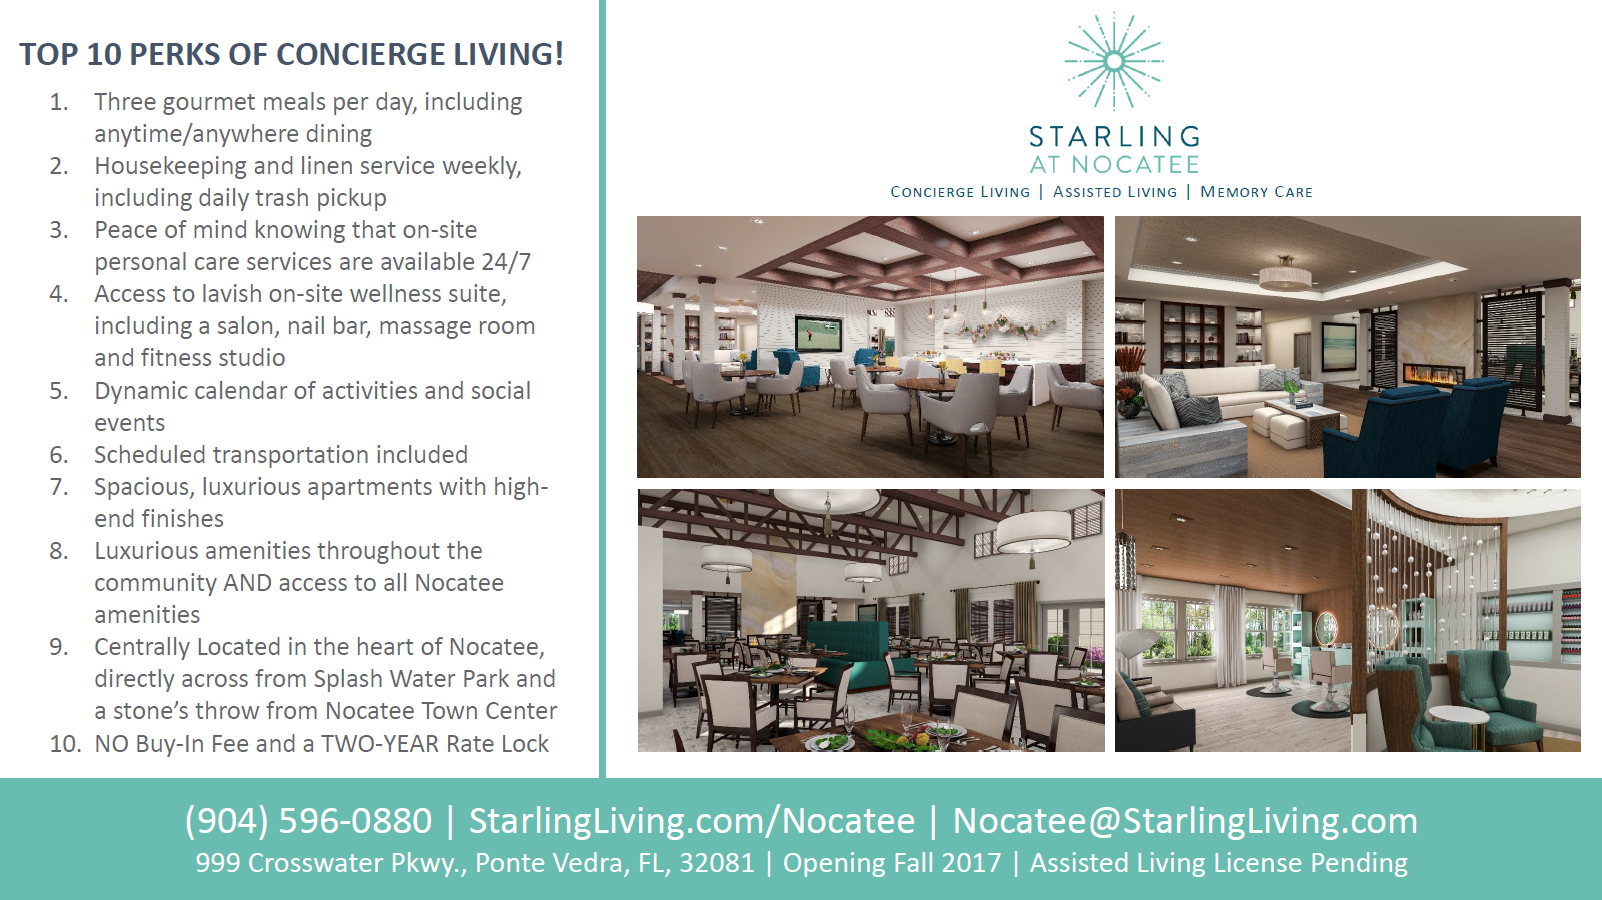 Starling at Nocatee Concierge Living Top 10